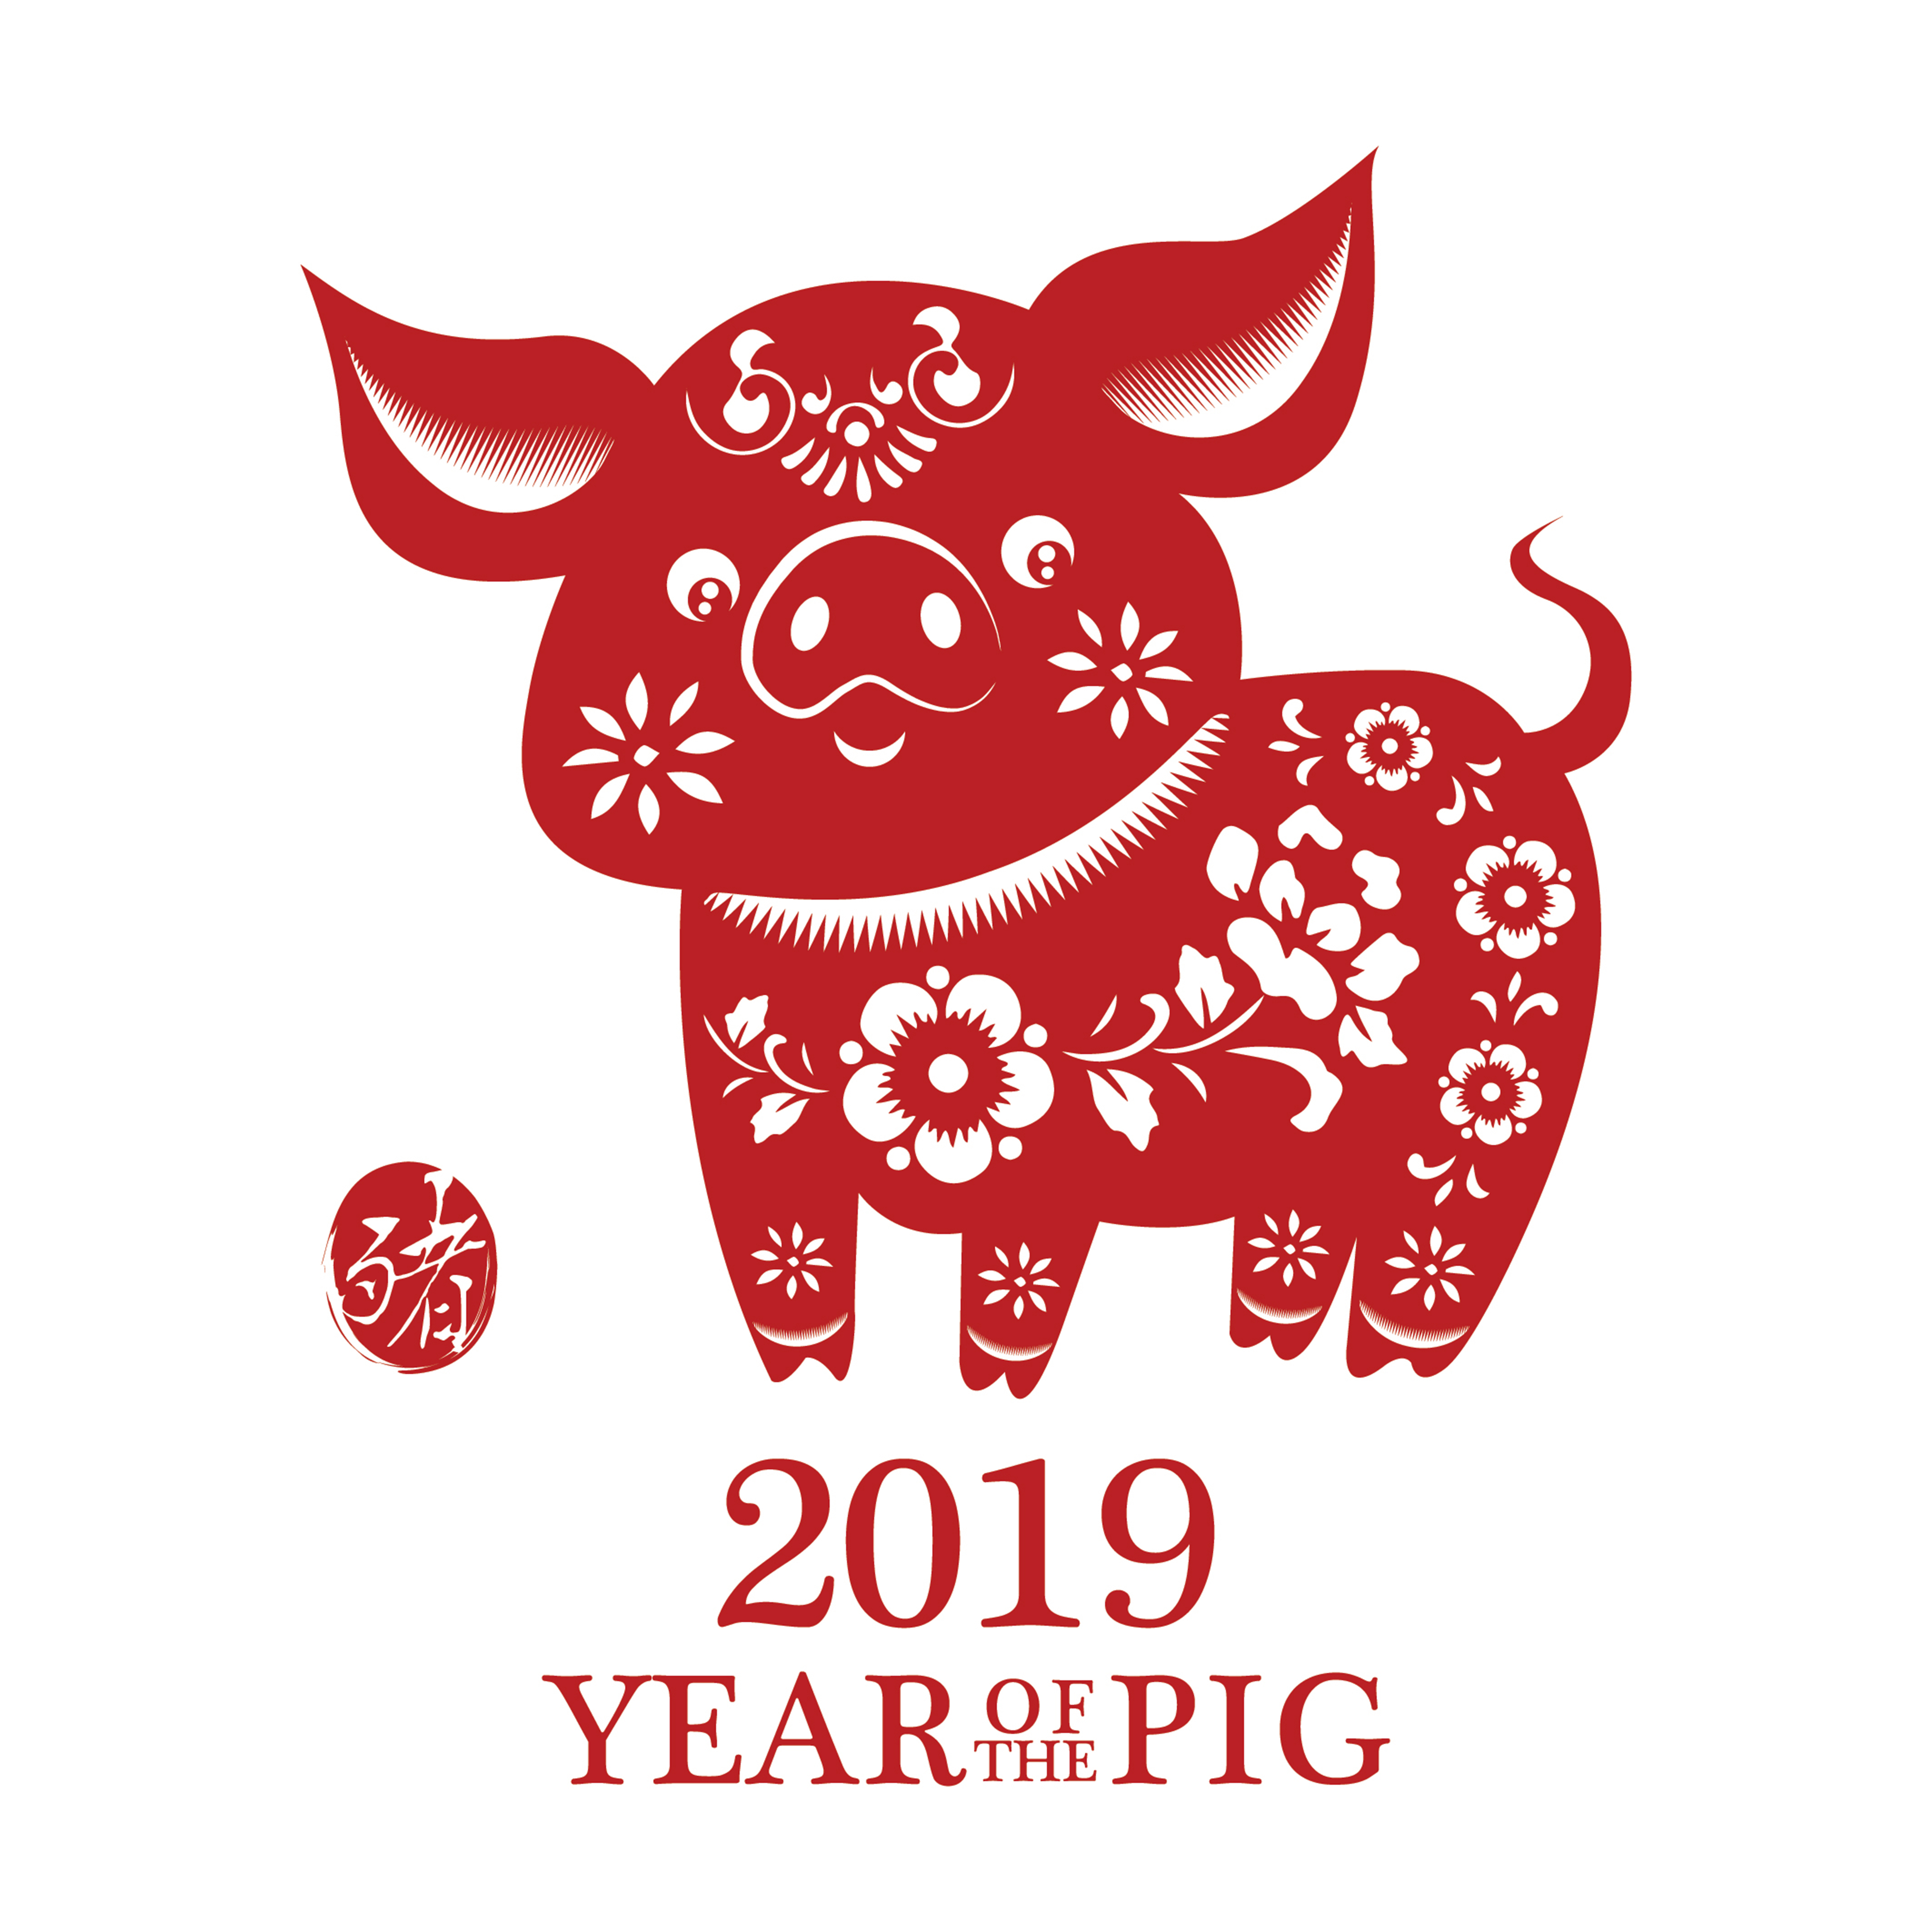 Year of the pig 2019 clipart clip art transparent YEAR OF THE EARTH PIG 2019 AND YOUR MONEY - Katy Song ... clip art transparent